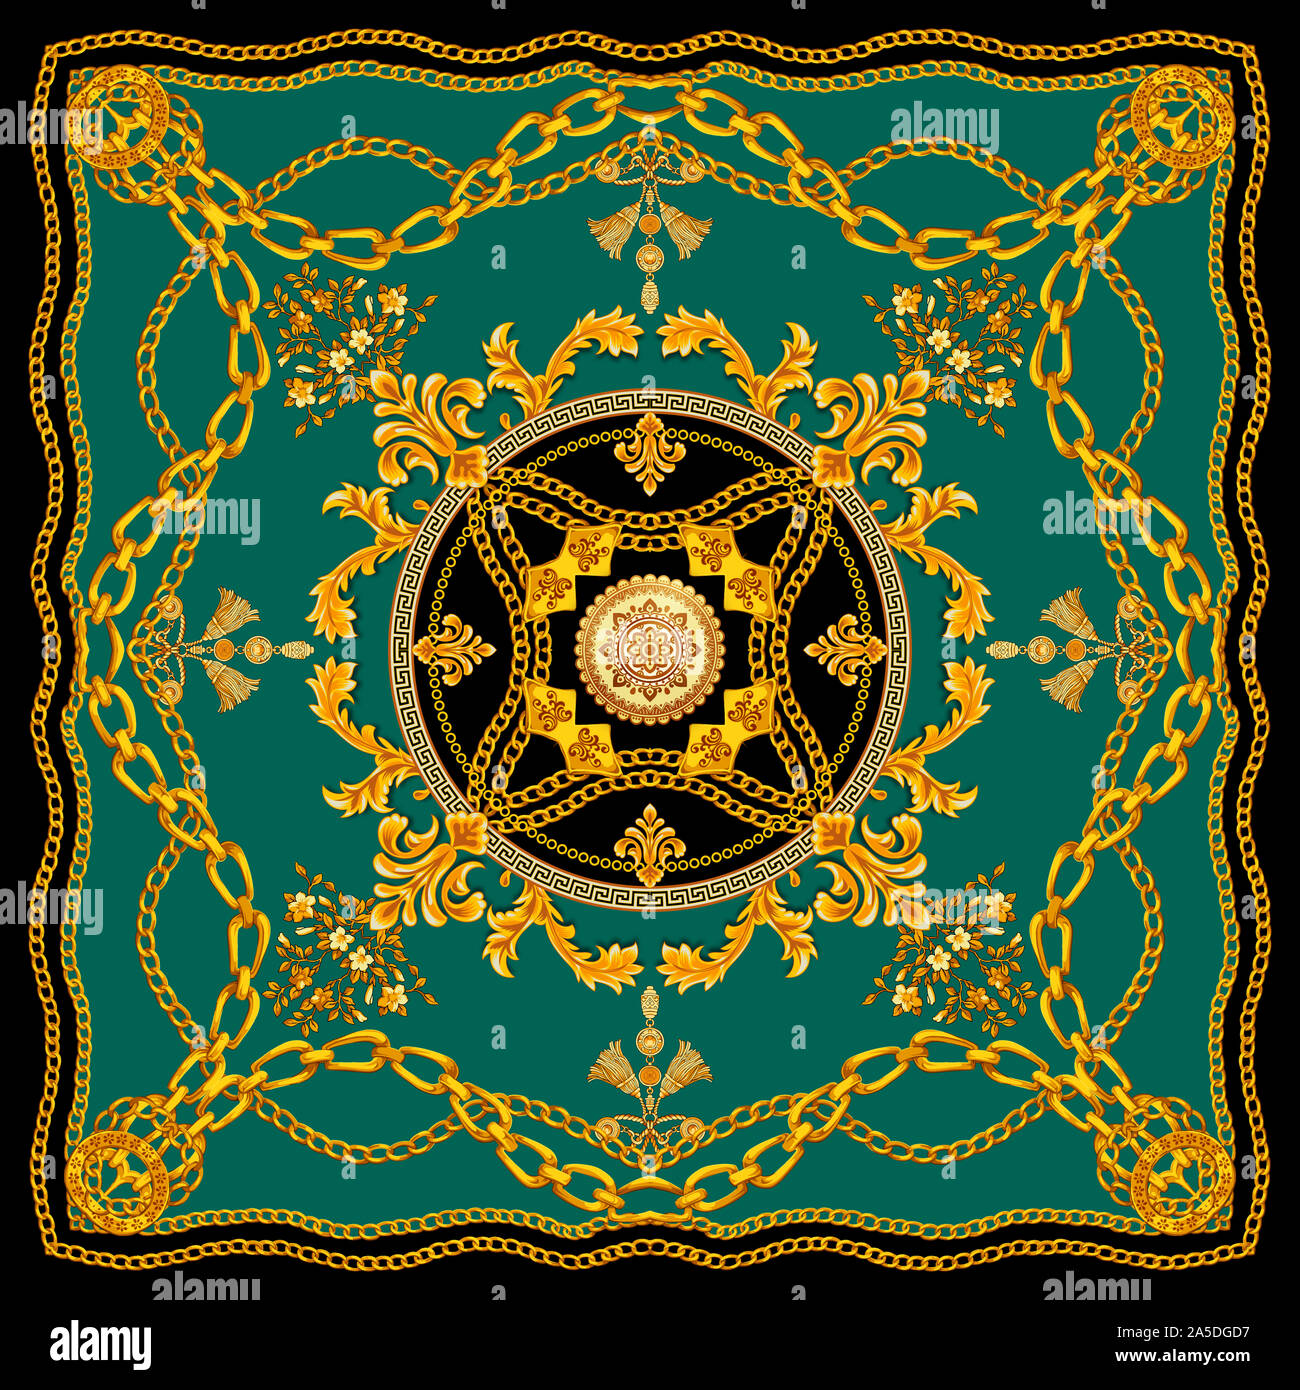 Golden Baroque With Chains On Blue Background Versace Style